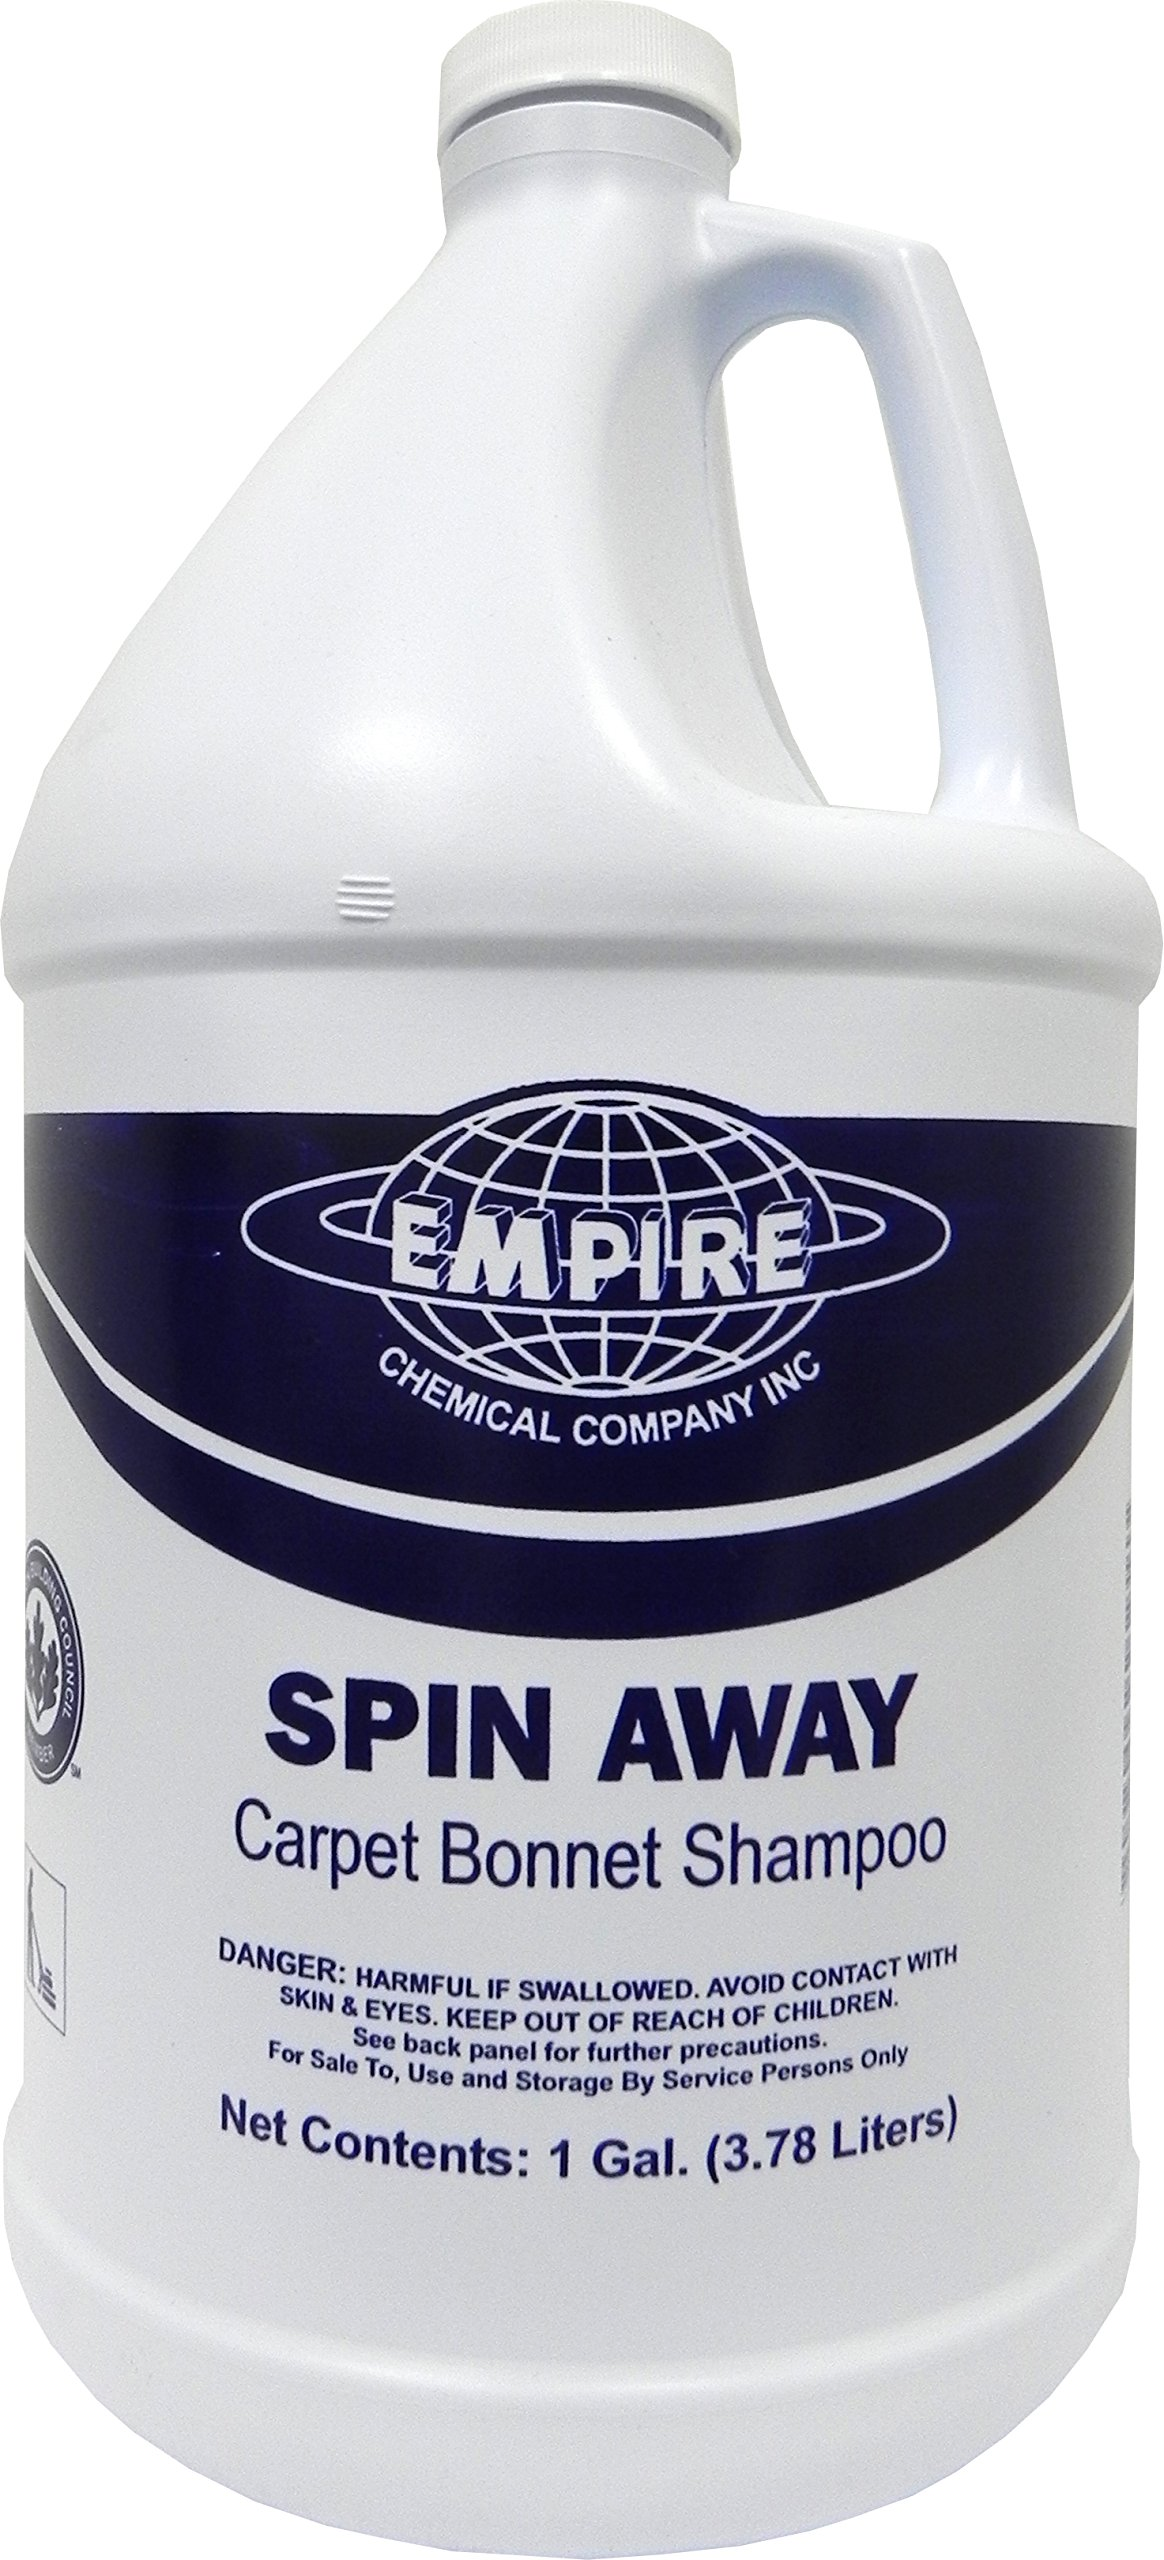 Empire Spin Away Carpet Bonnet Shampoo